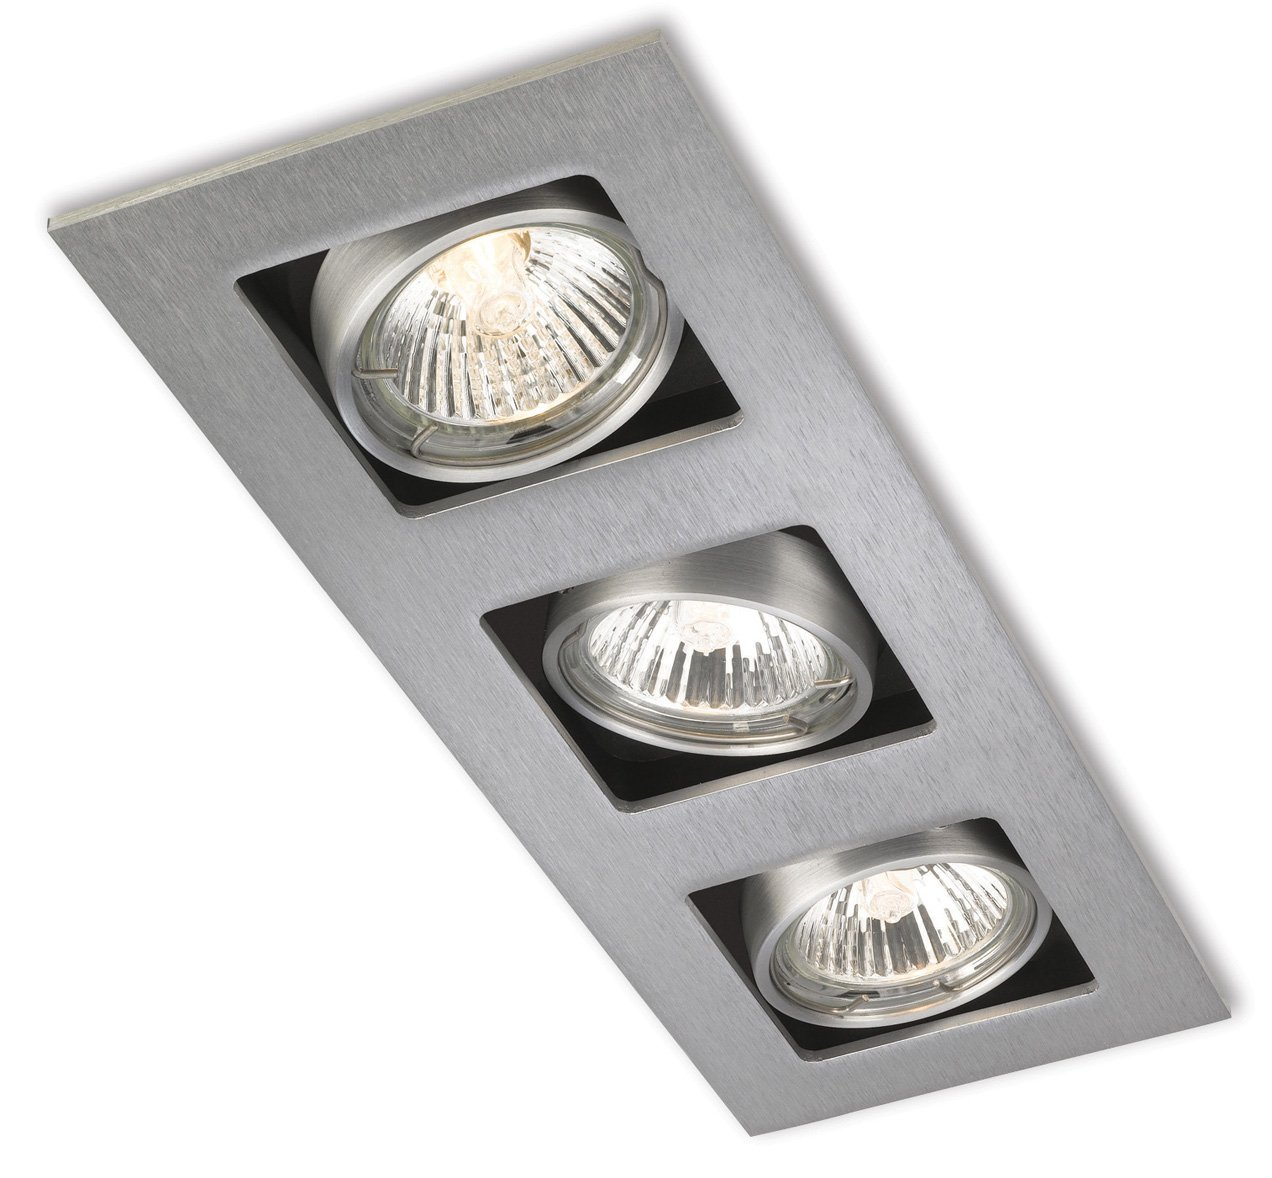 Firstlight 1504BS GU10 4 x 240 V 50 Watt Brushed Steel Cube Square Downlight Firstlight Products